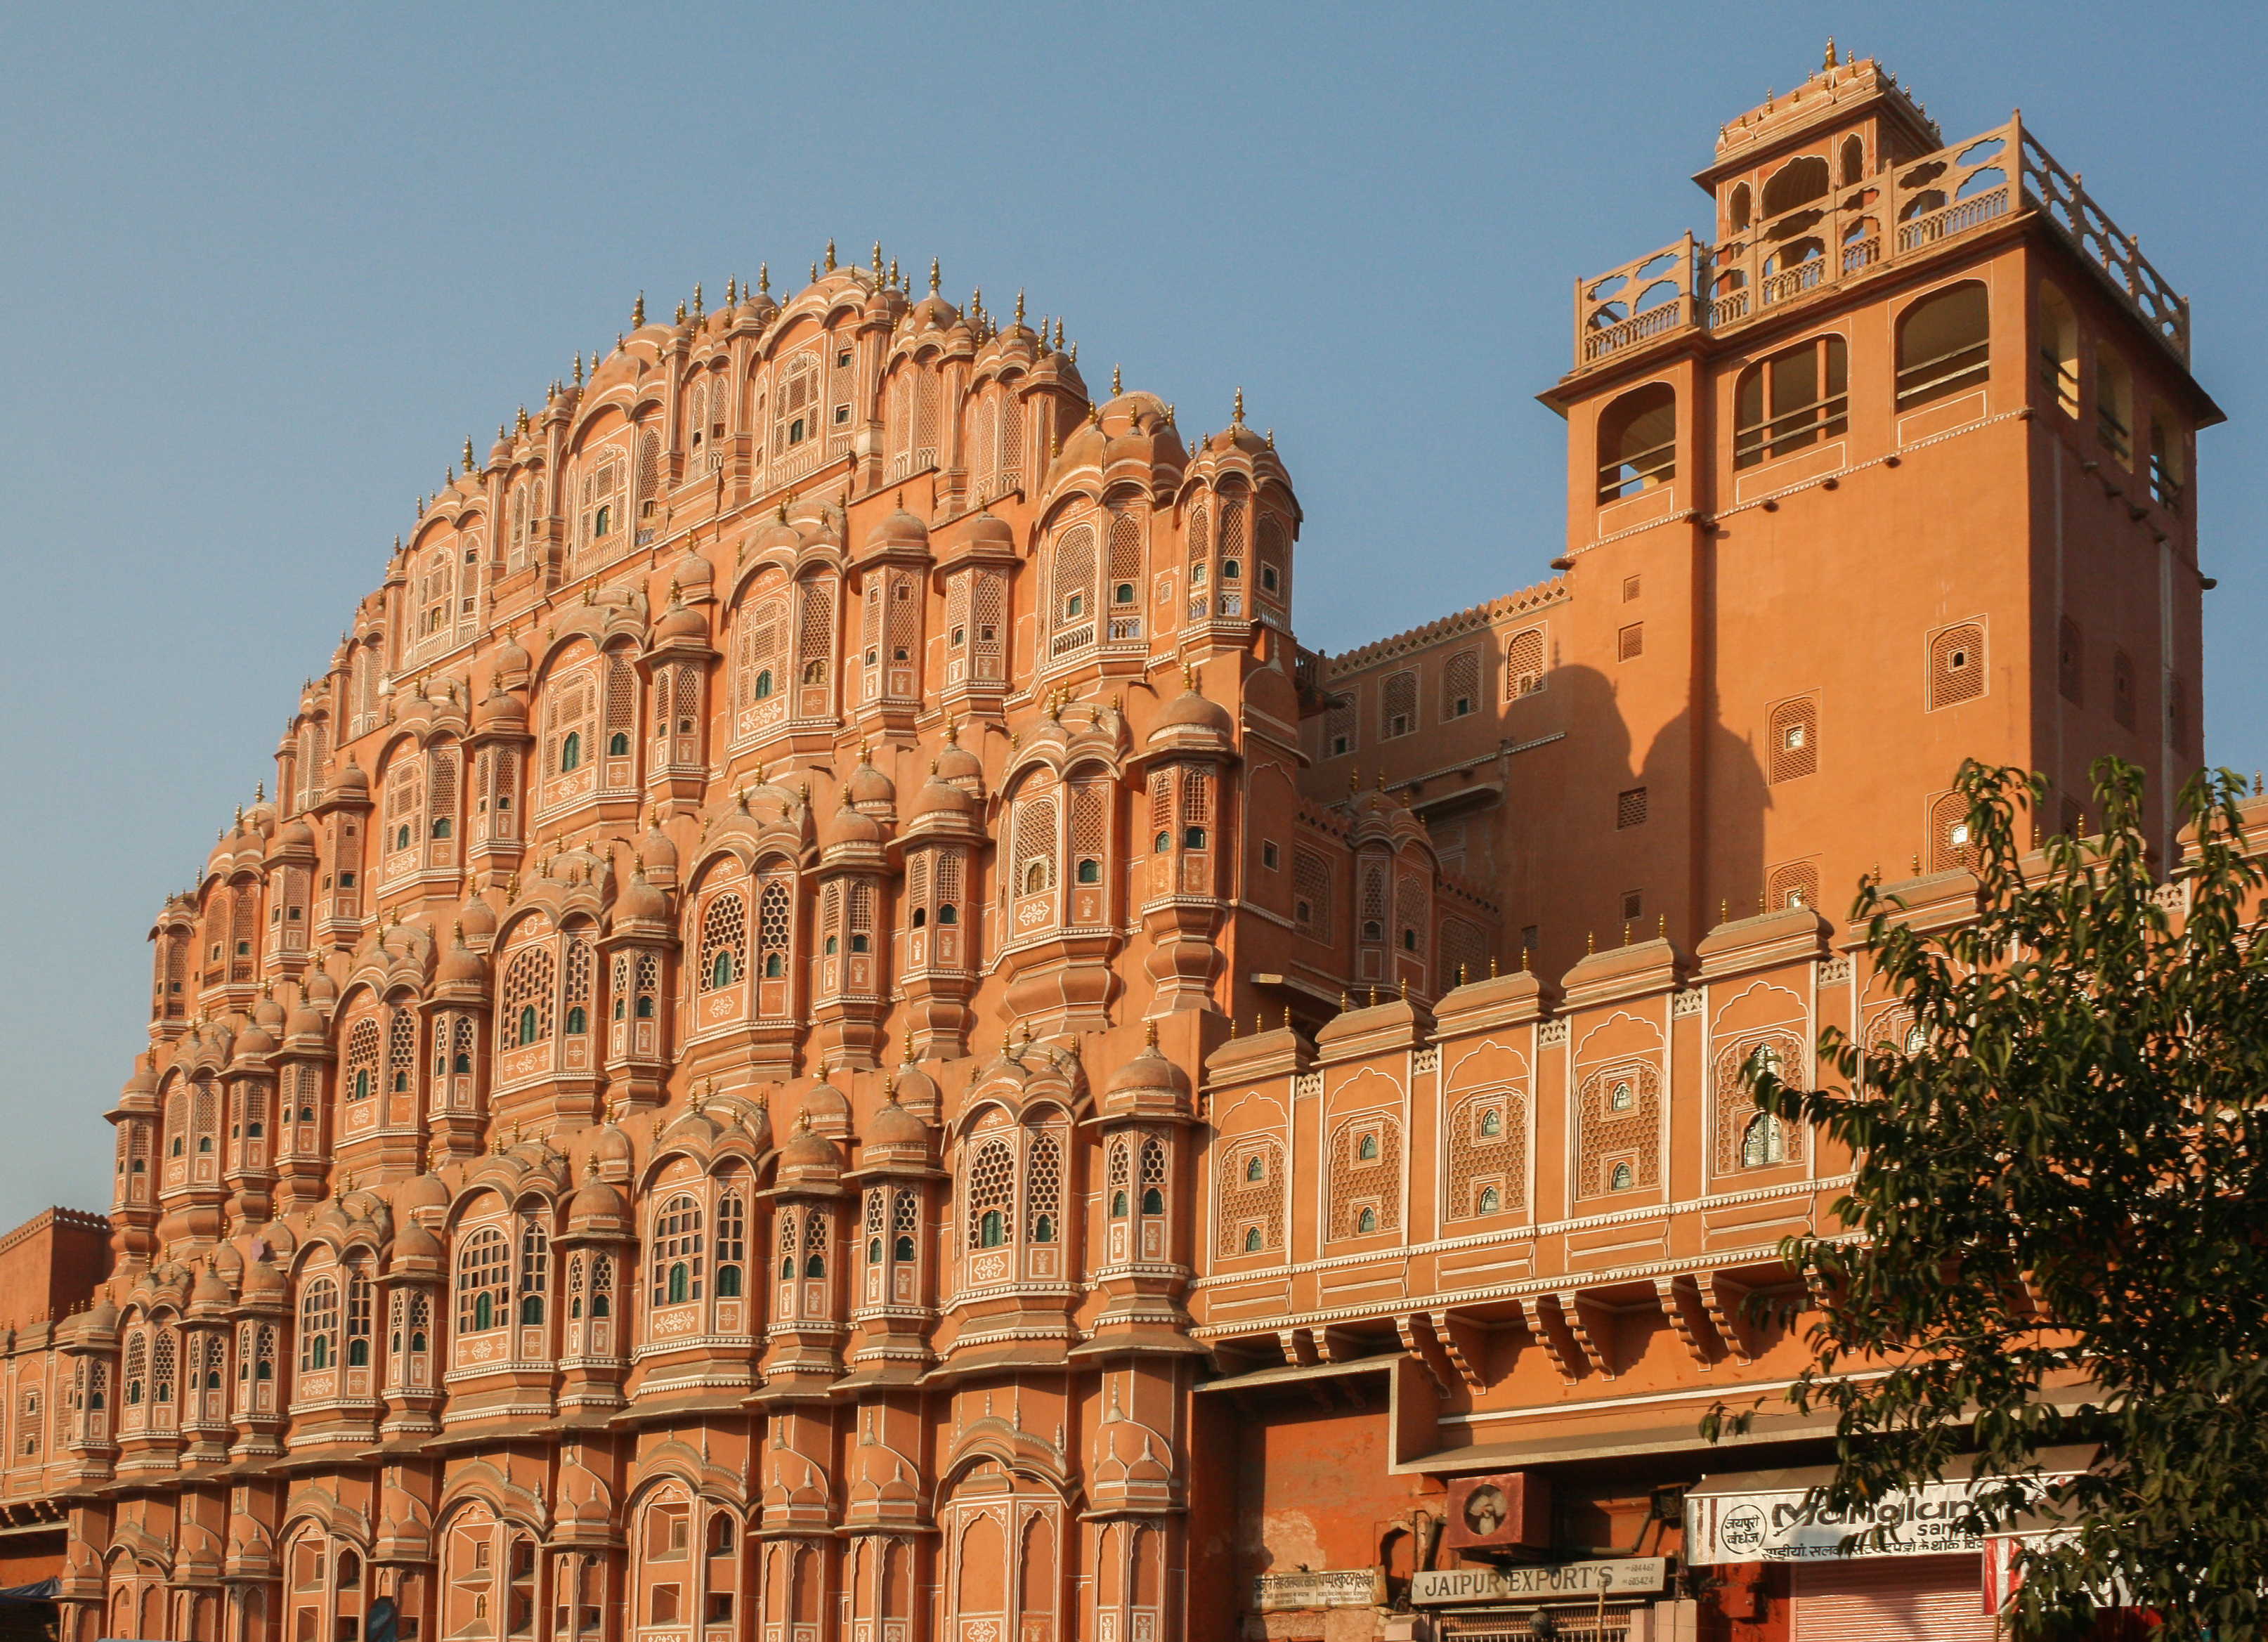 #atozchallenge - R for Rajasthan